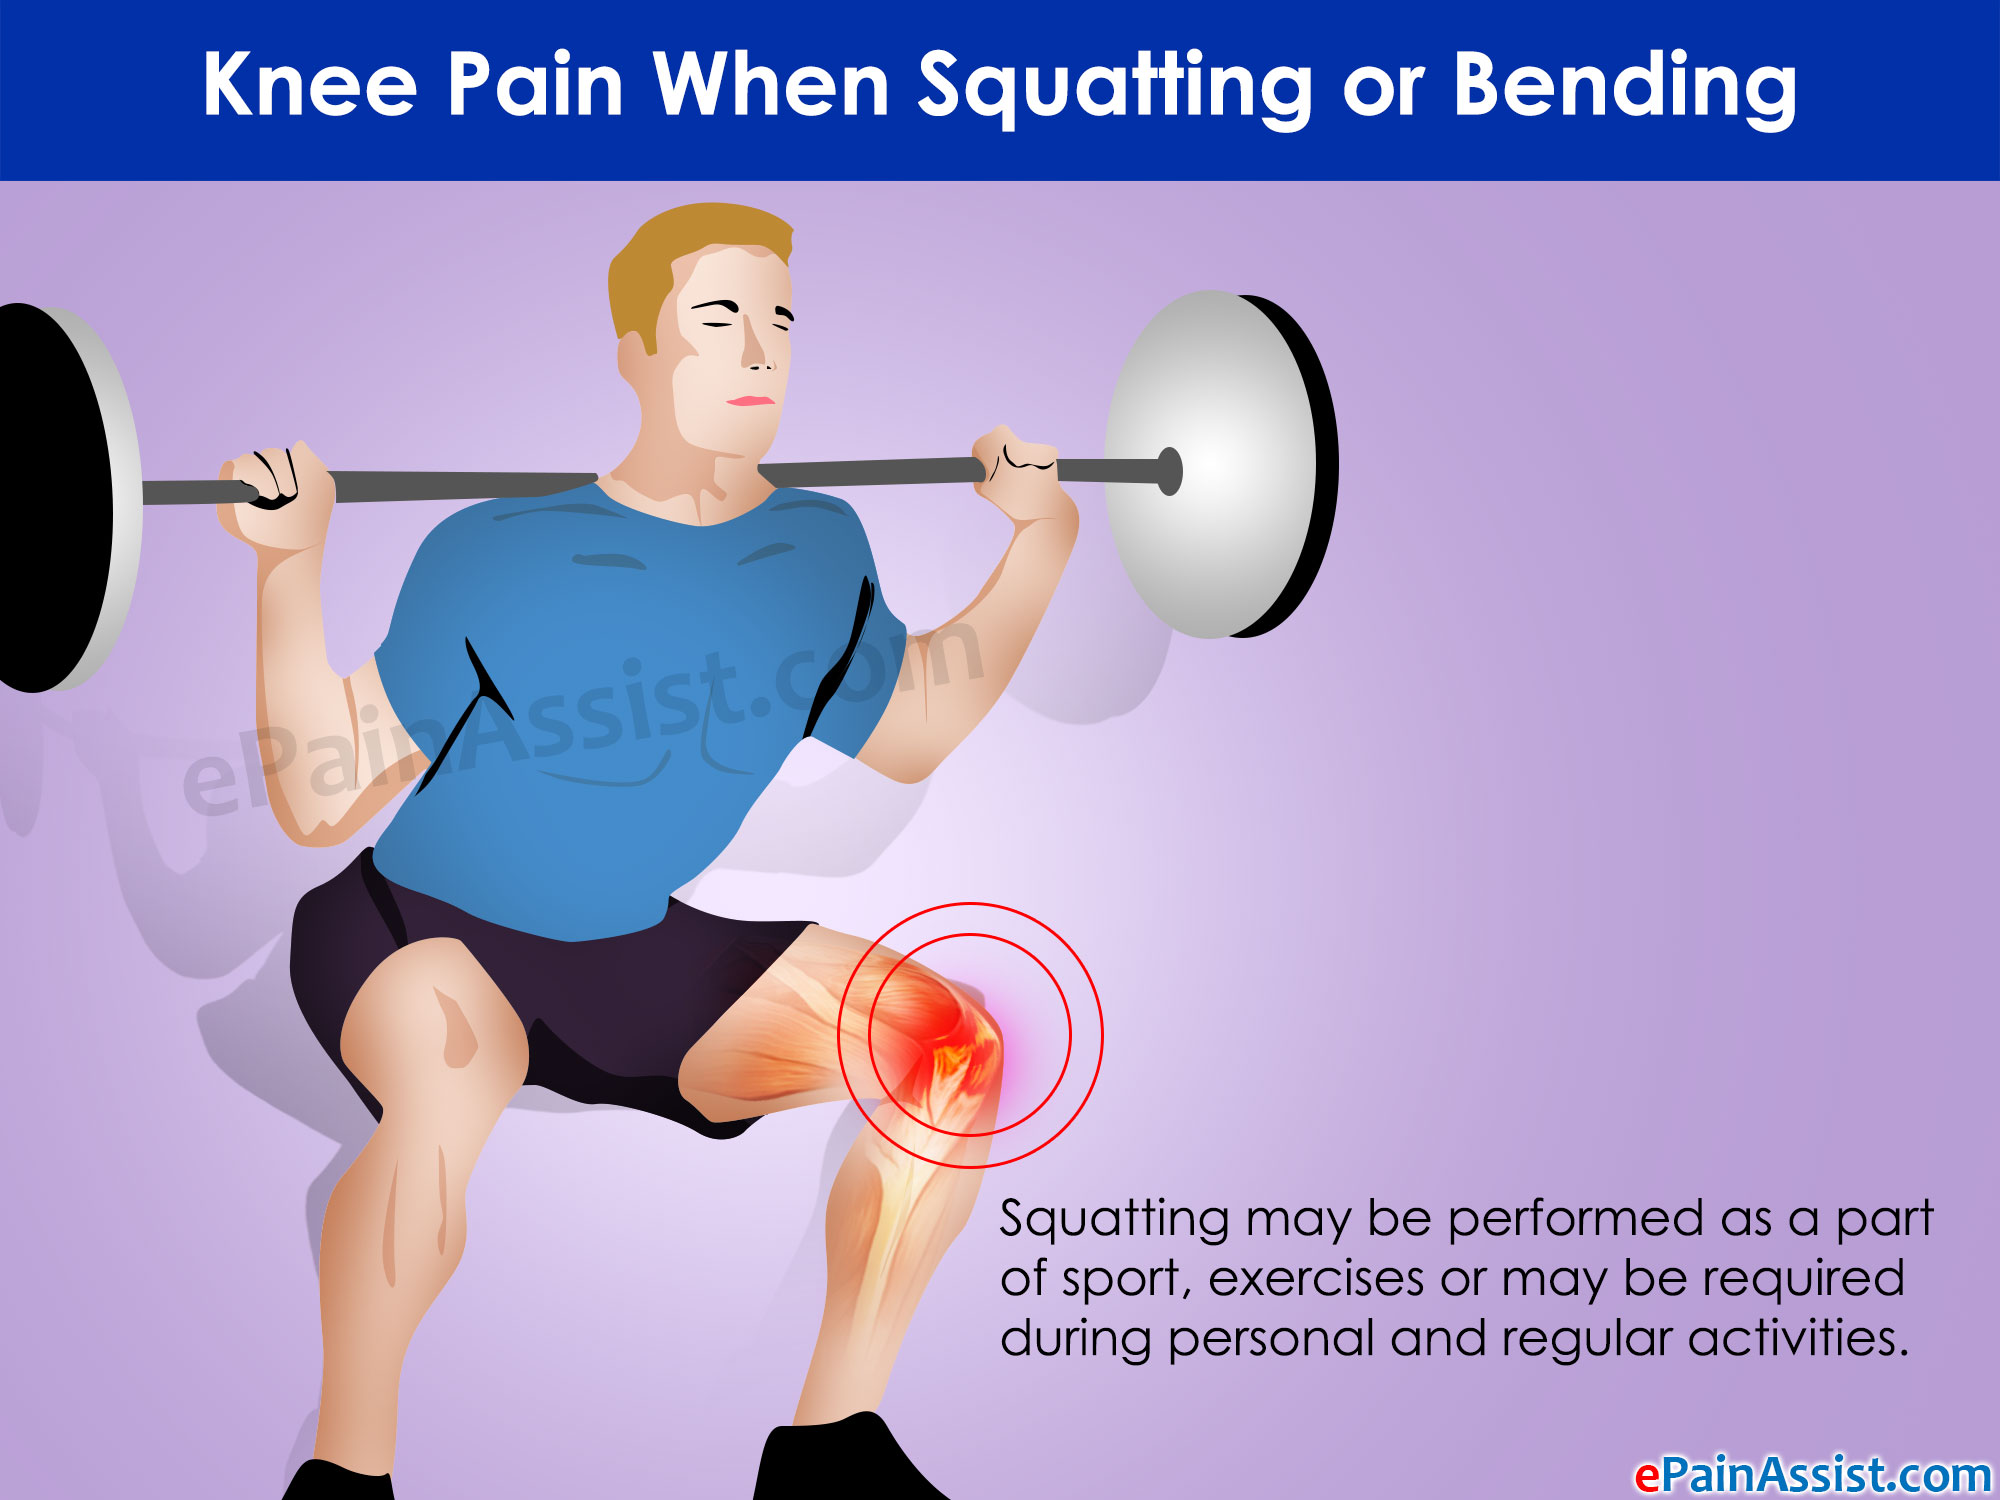 Knee Pain When Squatting or Bending